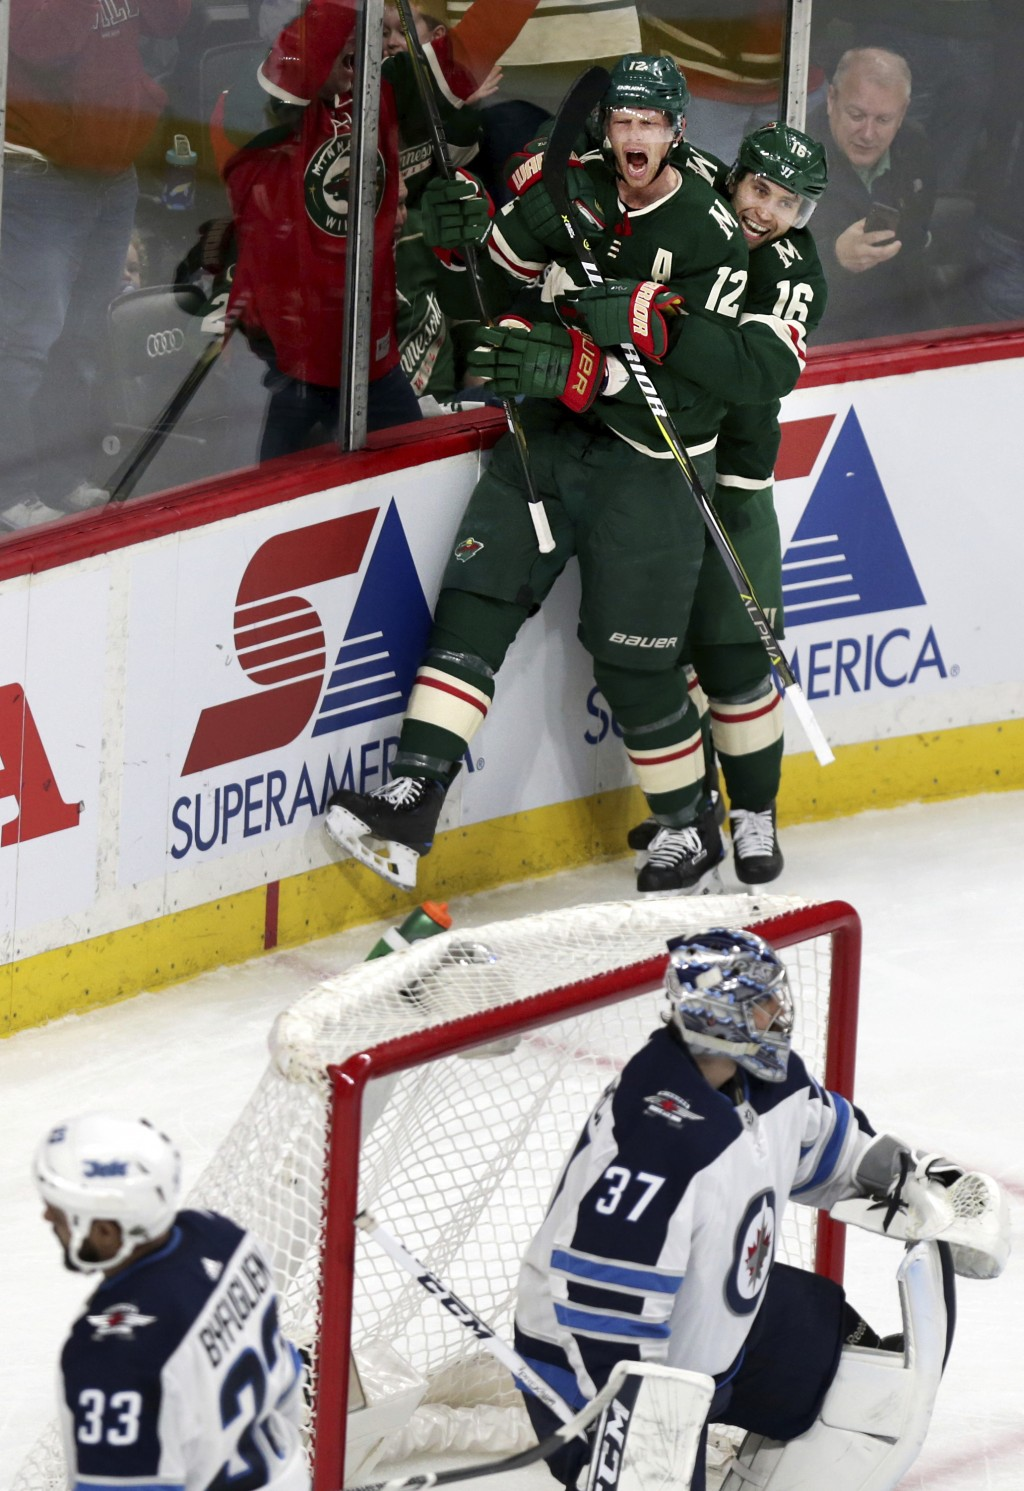 Minnesota Wild center Eric Staal (12) and Wild left wing Jason Zucker (16) celebrate after Staal scored a goal on Winnipeg Jets goalie Connor Hellebuy